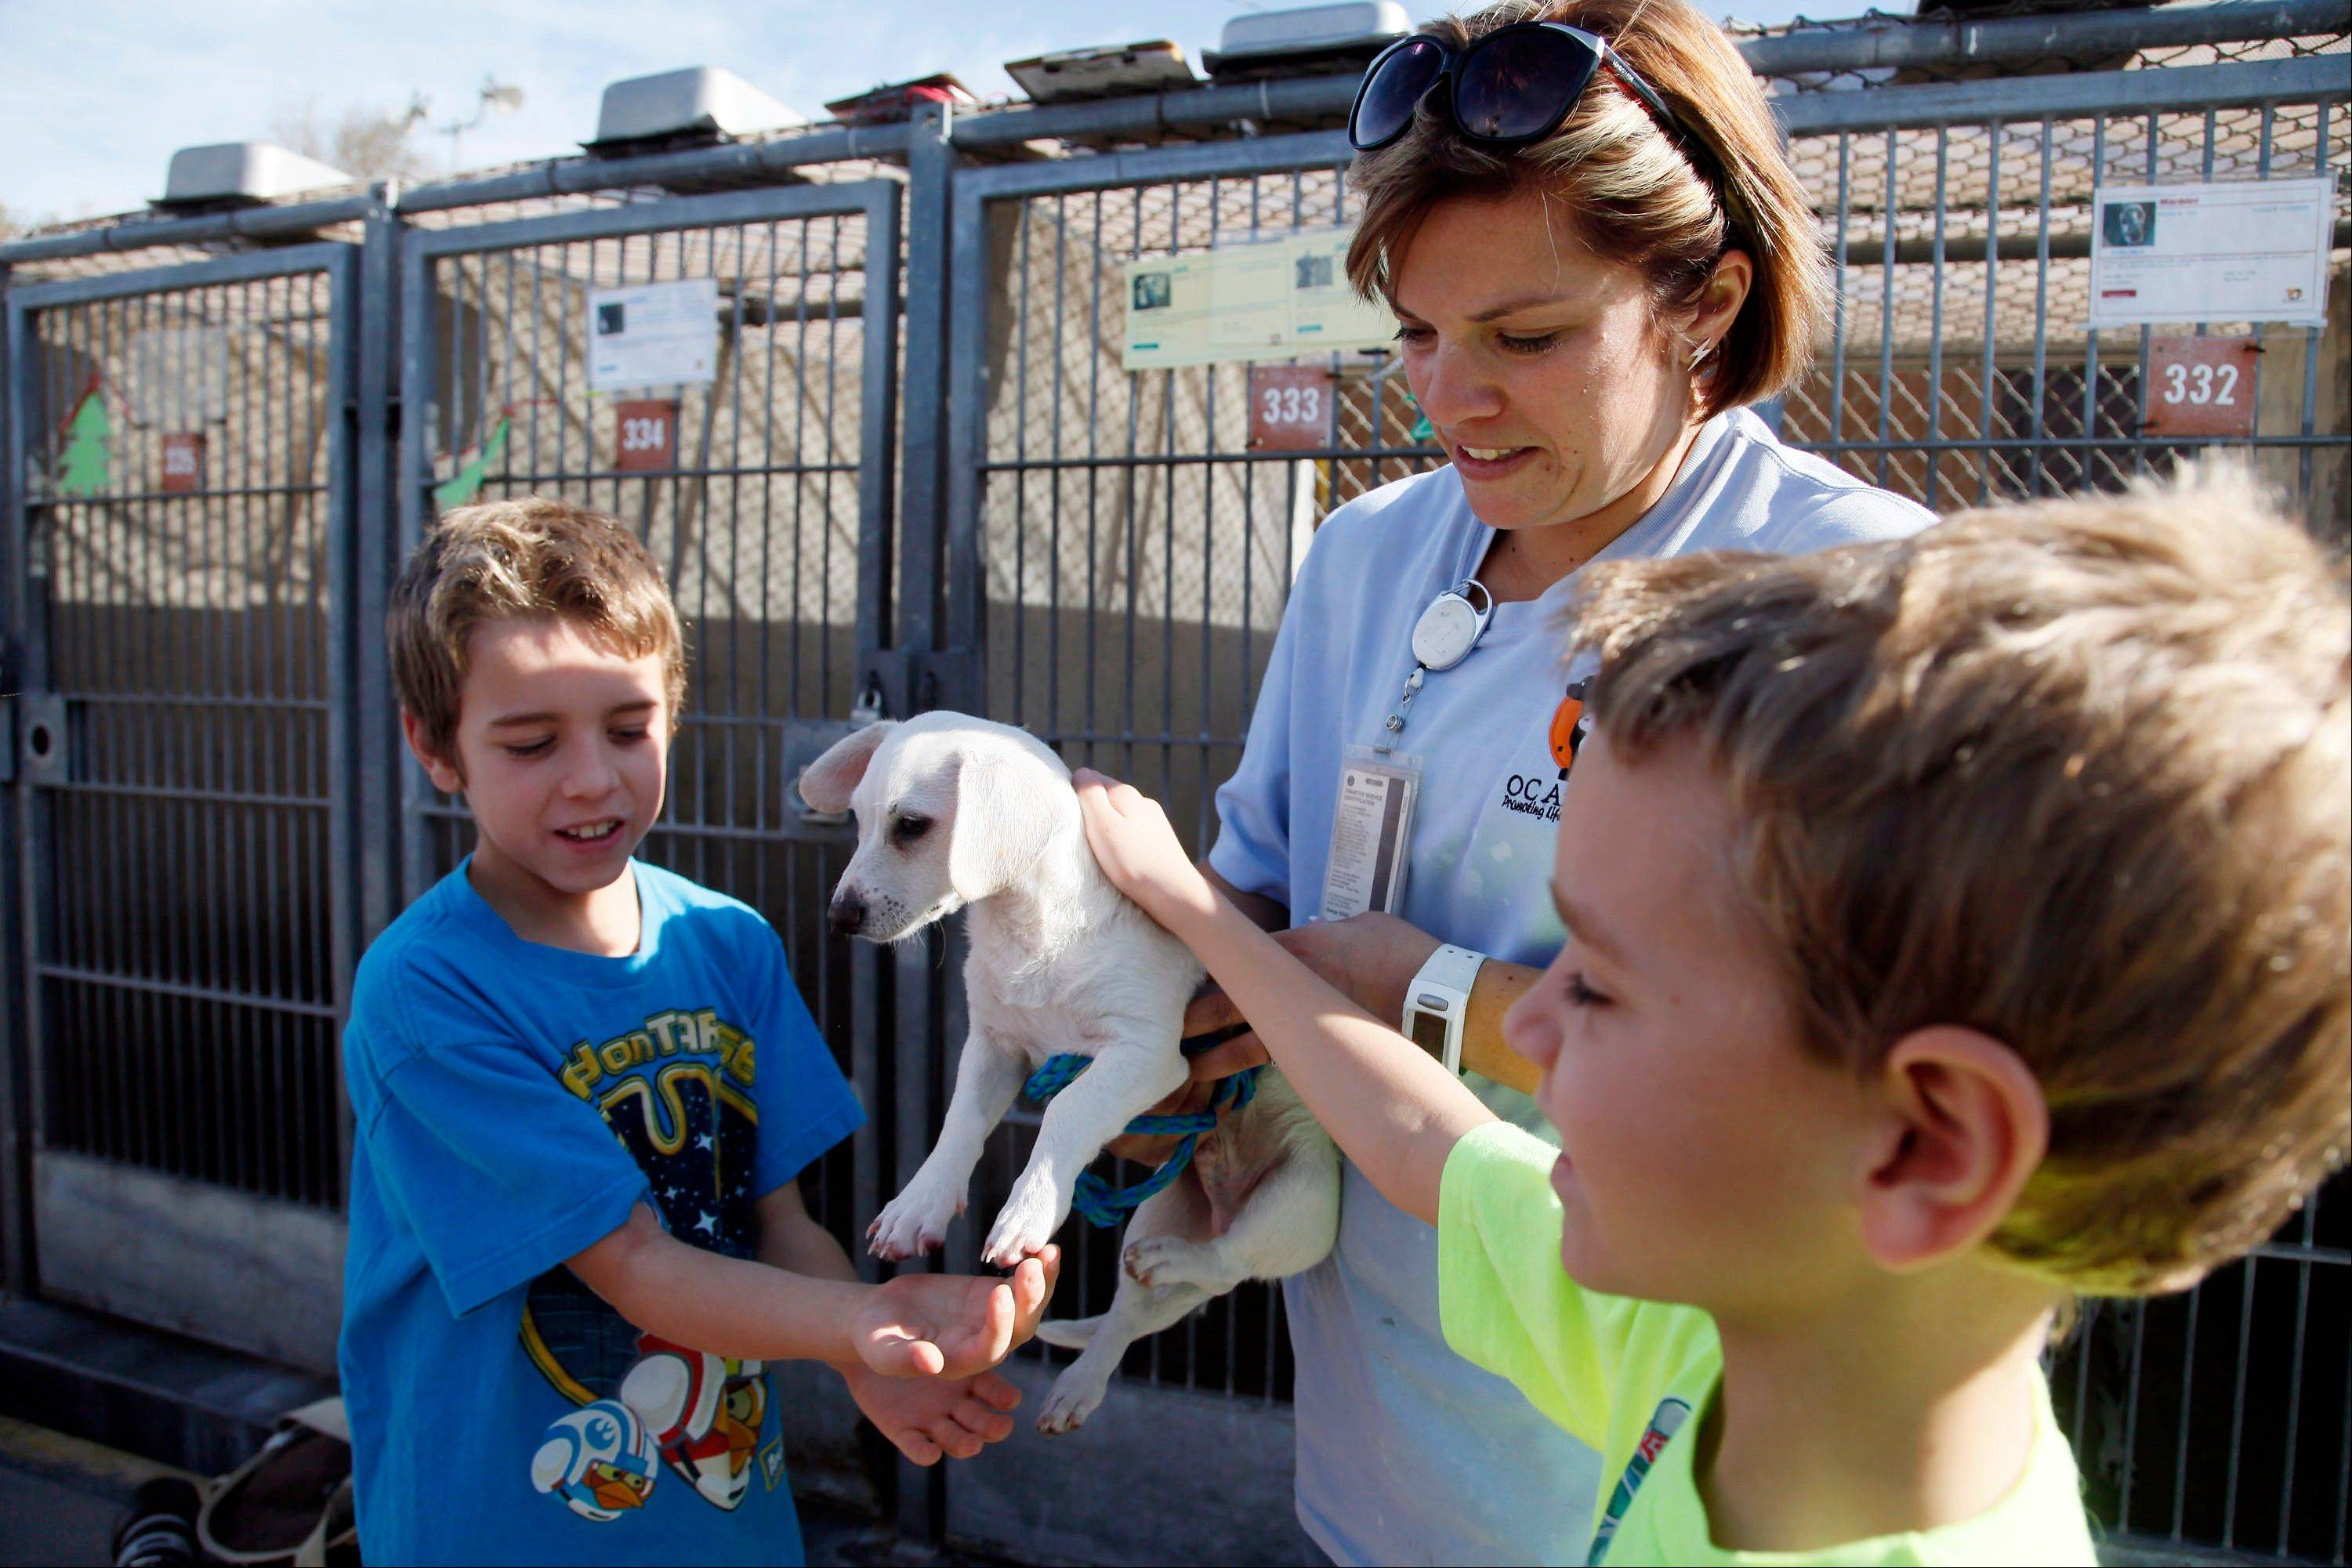 Erika Bennett, a kennel attendant/animal control officer at OC Animal Care, holds up a puppy for brothers Ryan Wartenberg, left, and Jason Wartenberg, as they look into adopting a pet at the shelter in Orange Calif. Some shelters around the country are ramping up for Christmas Day deliveries of new family pets, a move applauded by the American Society for the Prevention of Cruelty to Animals, whose new study supports seasonal adoptions.